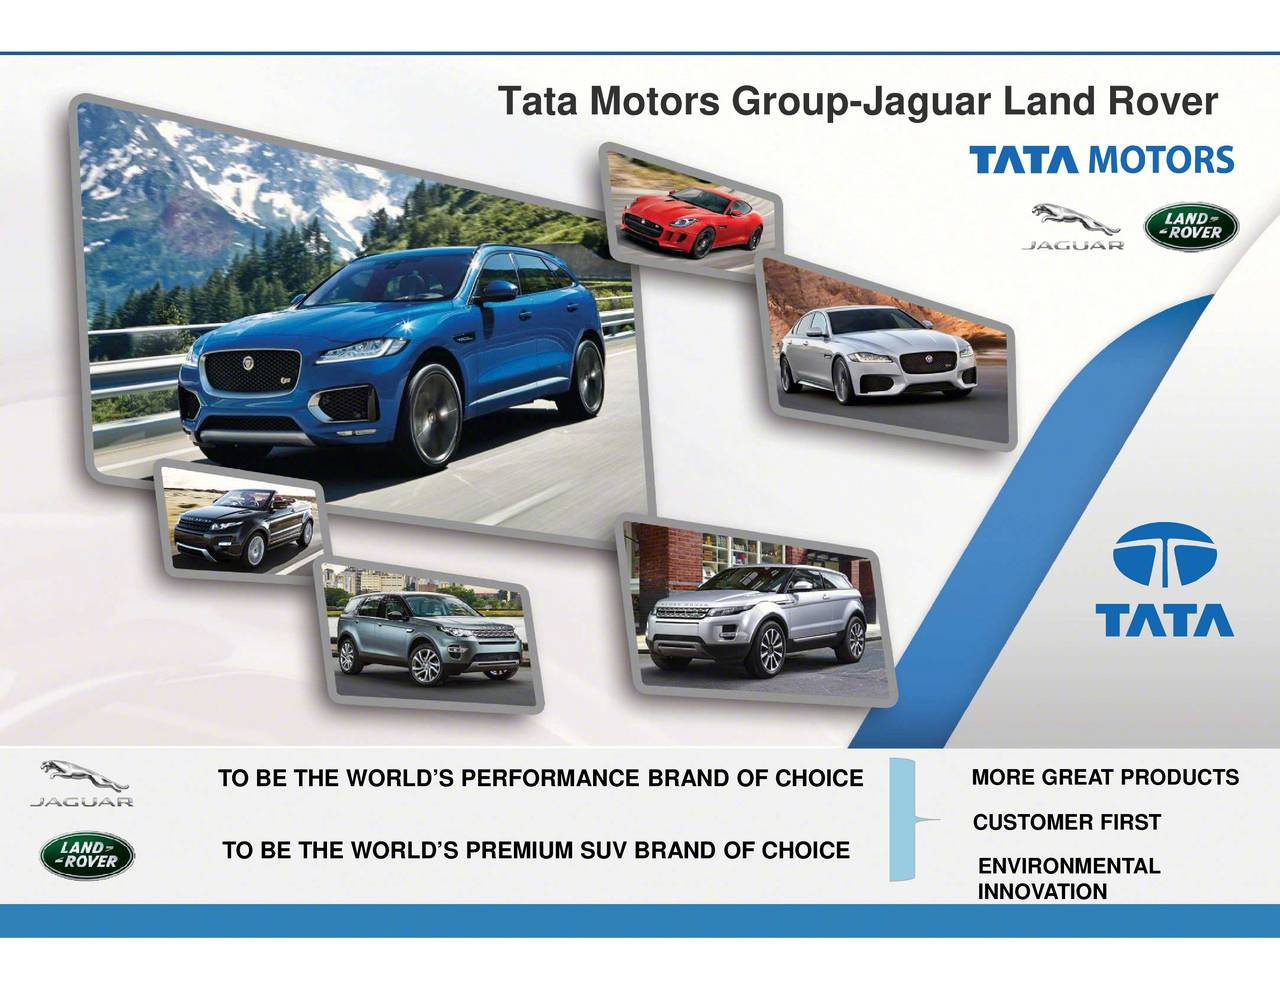 tata motors 3 essay Tata motors is an automotive company to take notice of representing the evolving indian population and growing economy of one of the world's key emerging markets, it is a market leader for commercial vehicles and third for passenger vehicles in the indian market it shocked the world by.